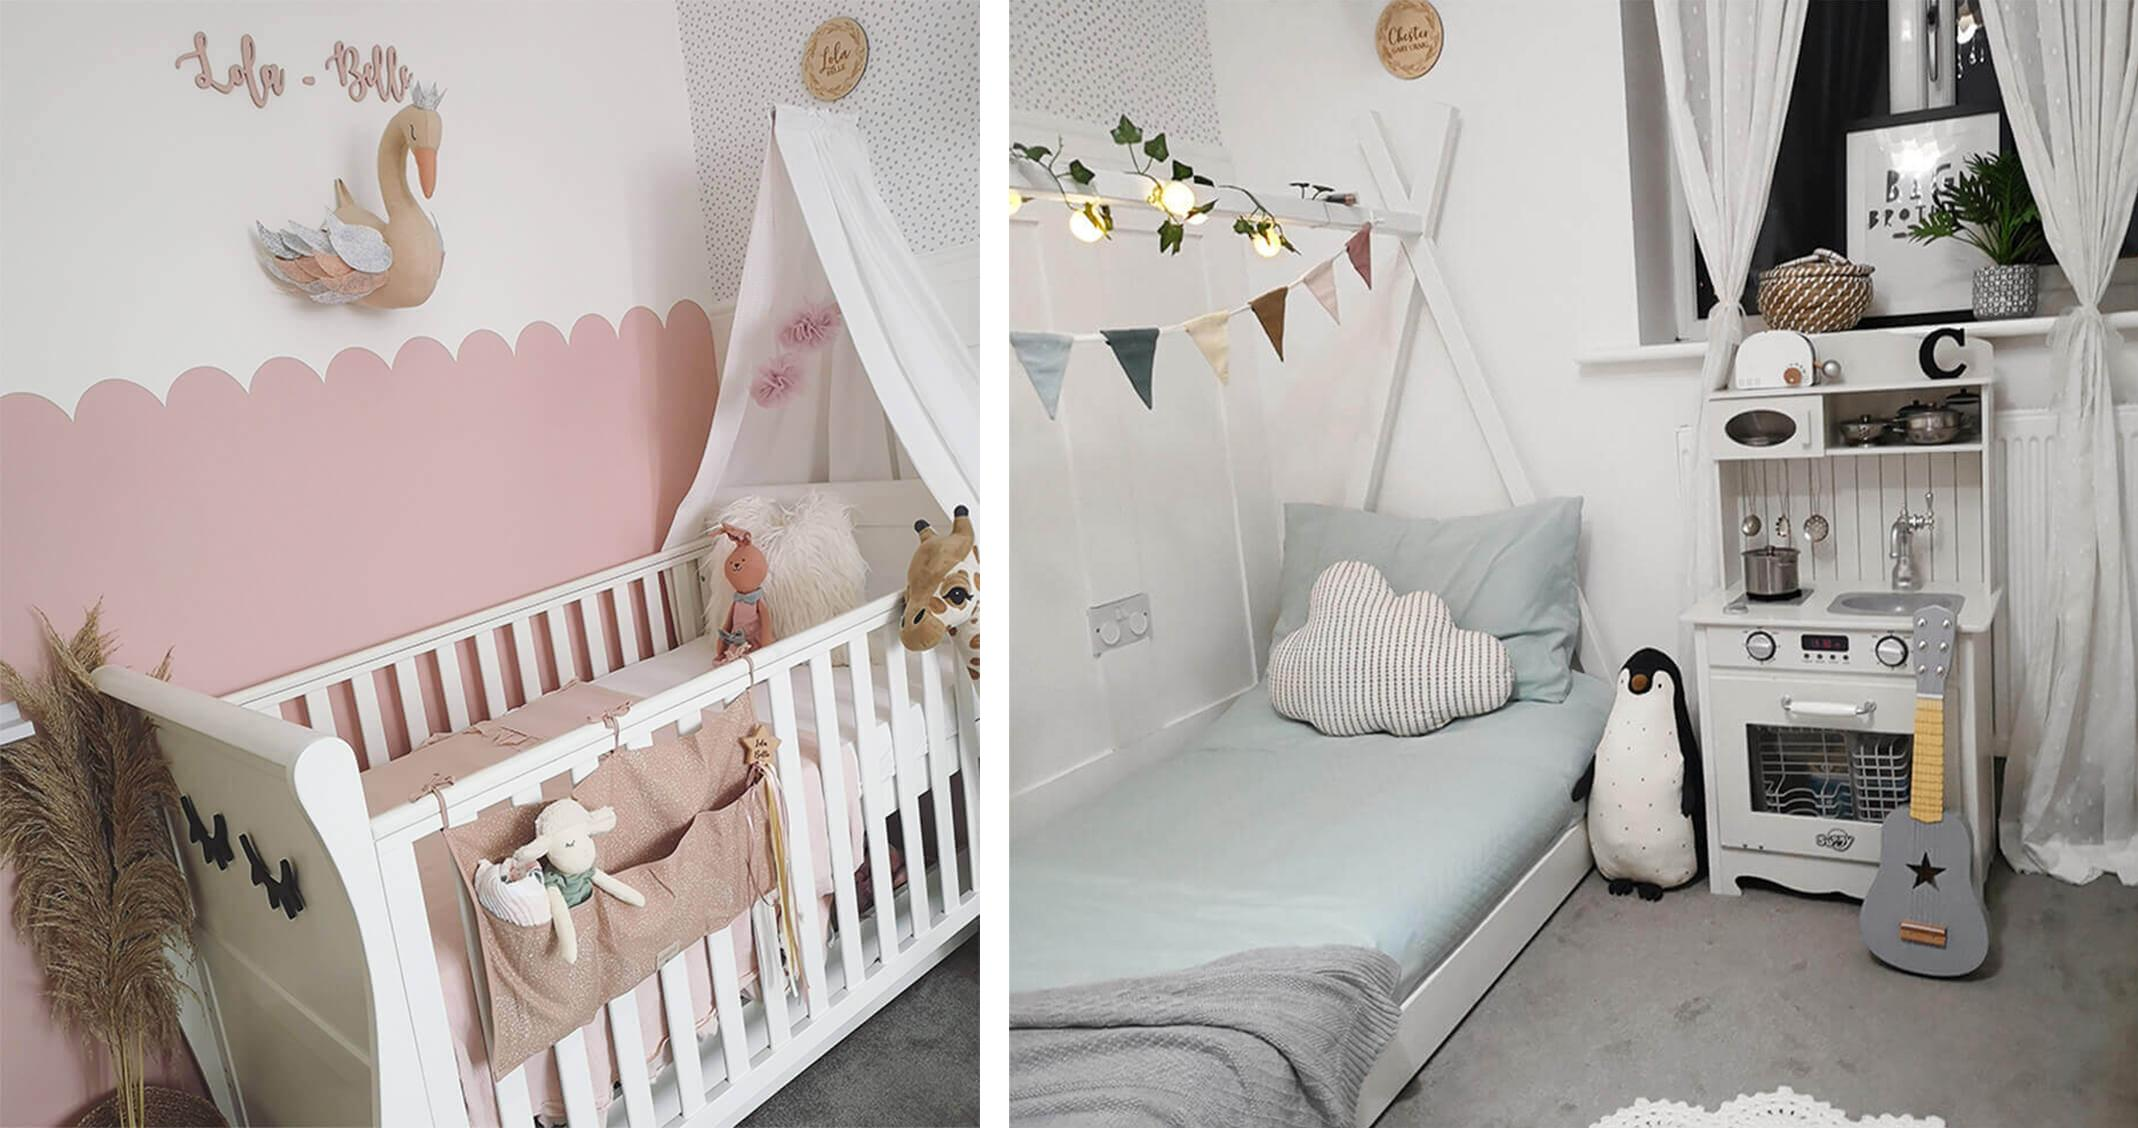 A children's bedroom with blue and pink accents